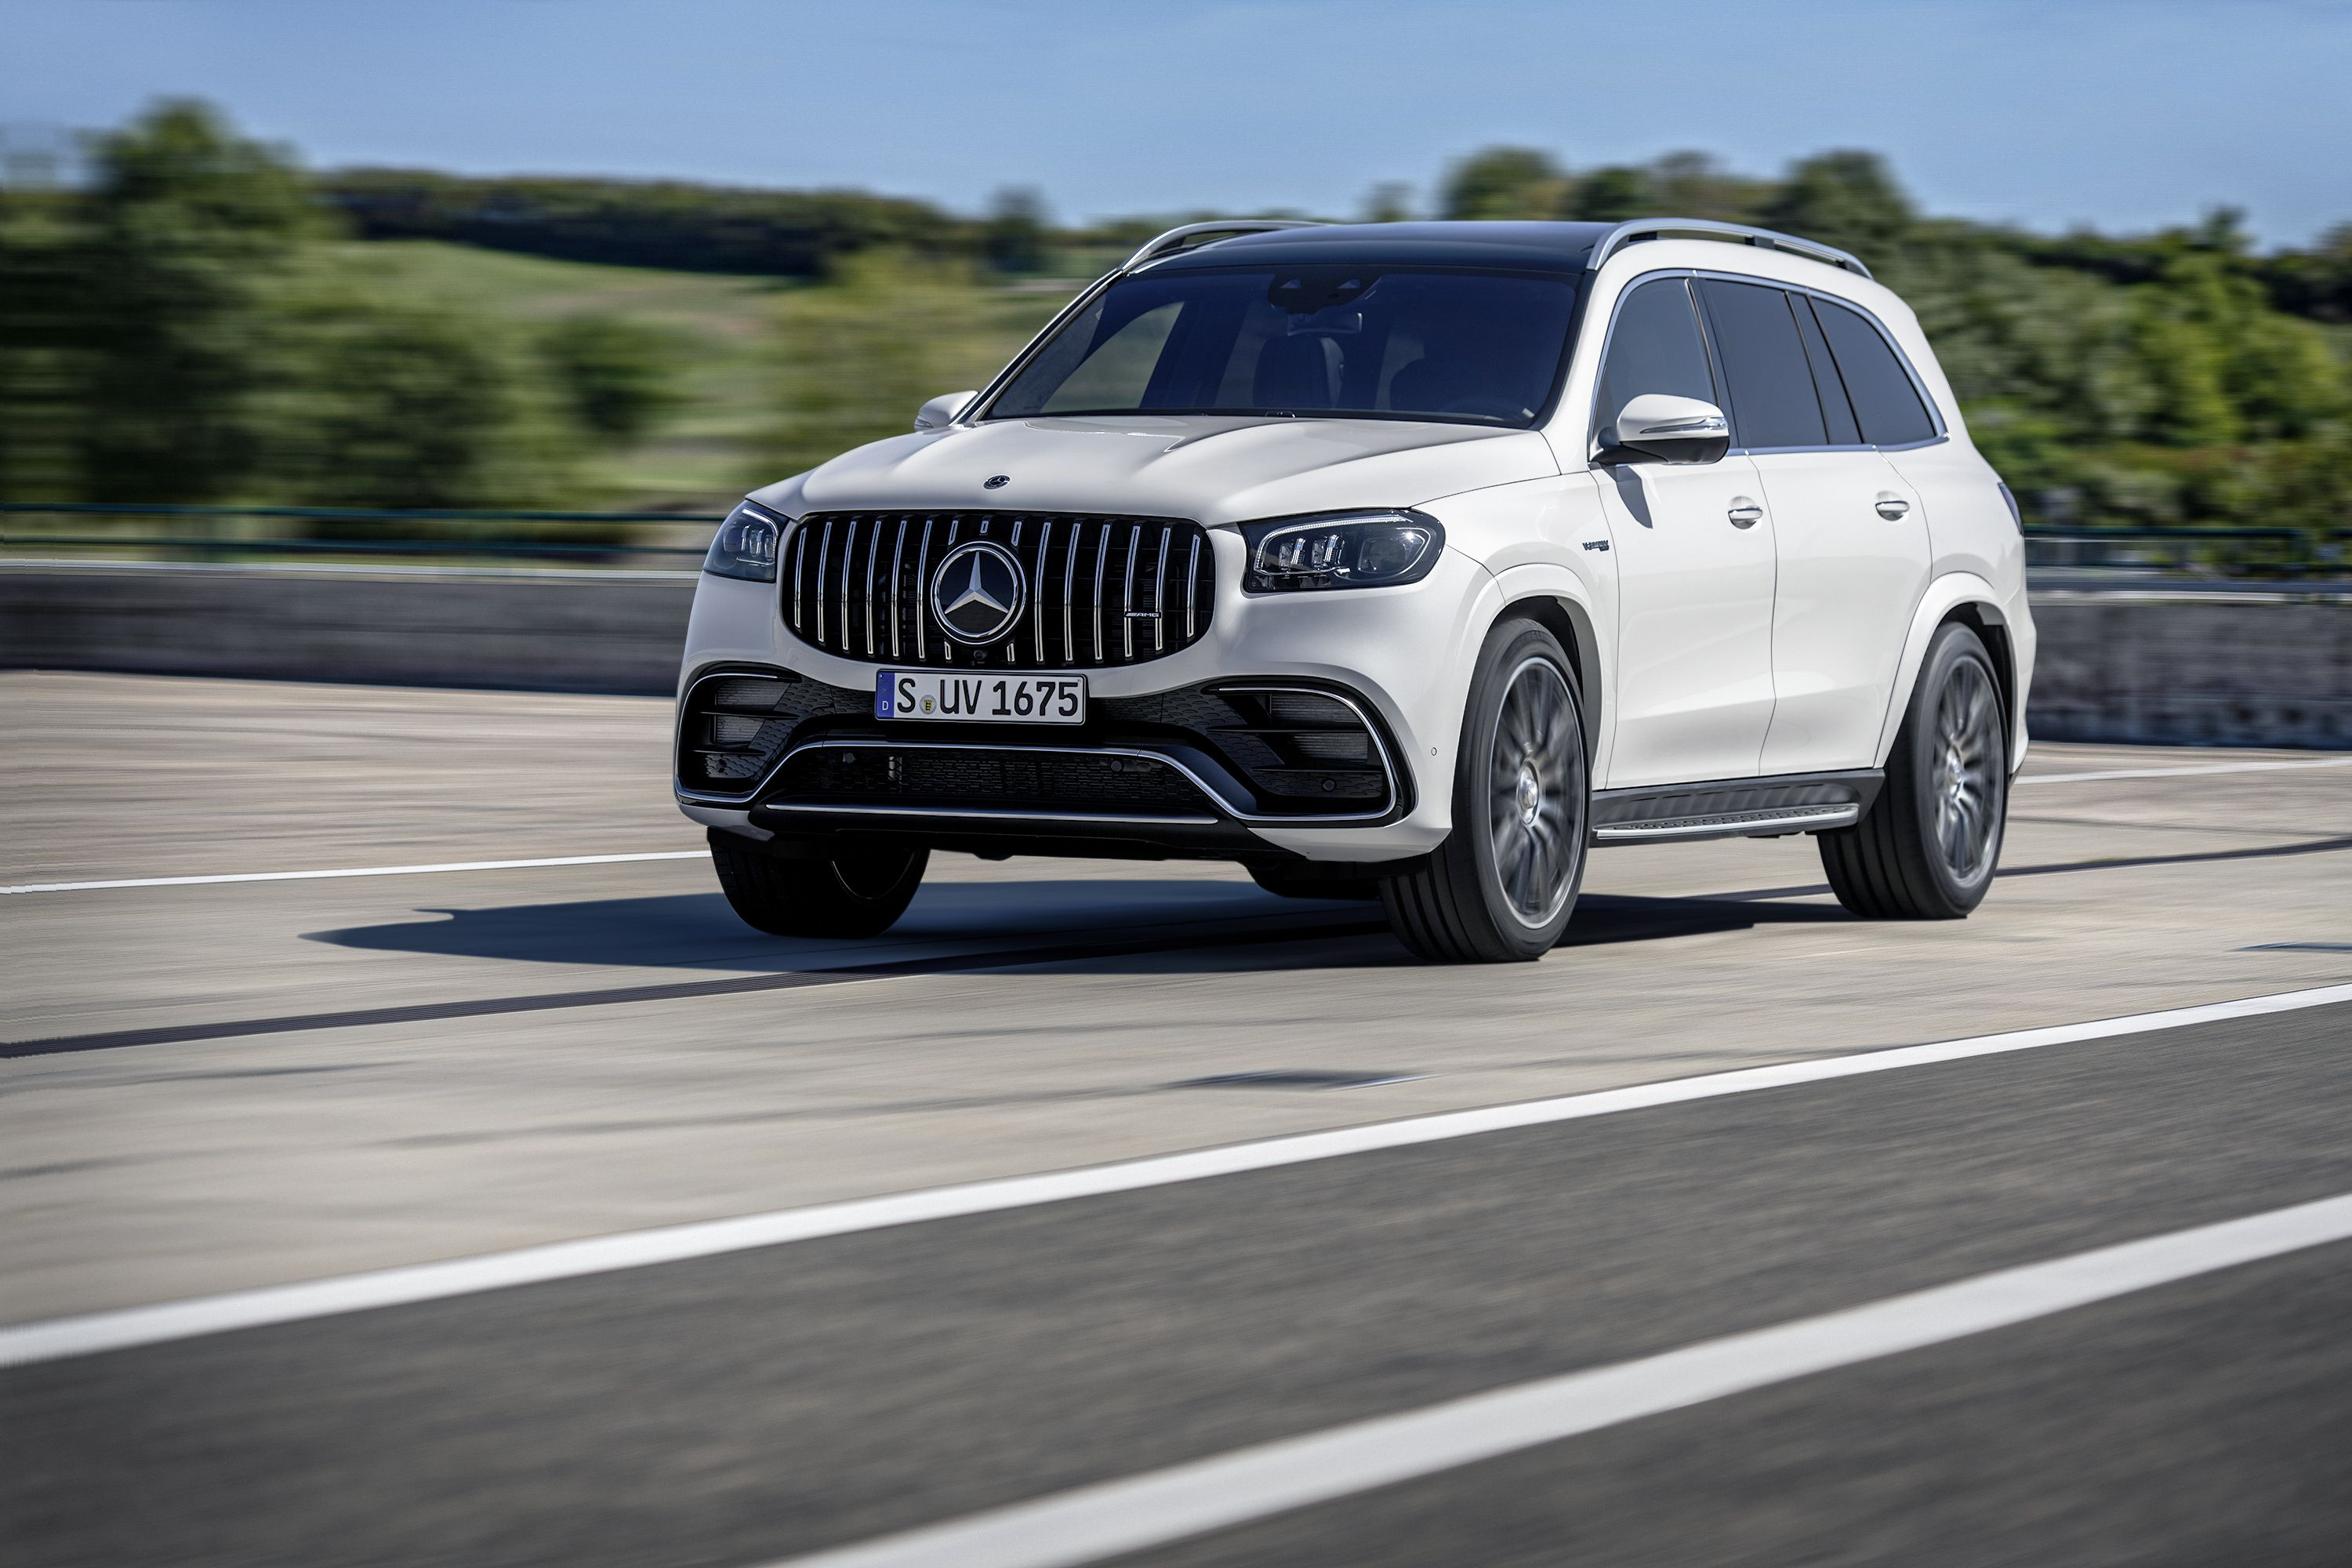 2021 Mercedes Amg Gls 63 4matic Picture Gallery And Details Top